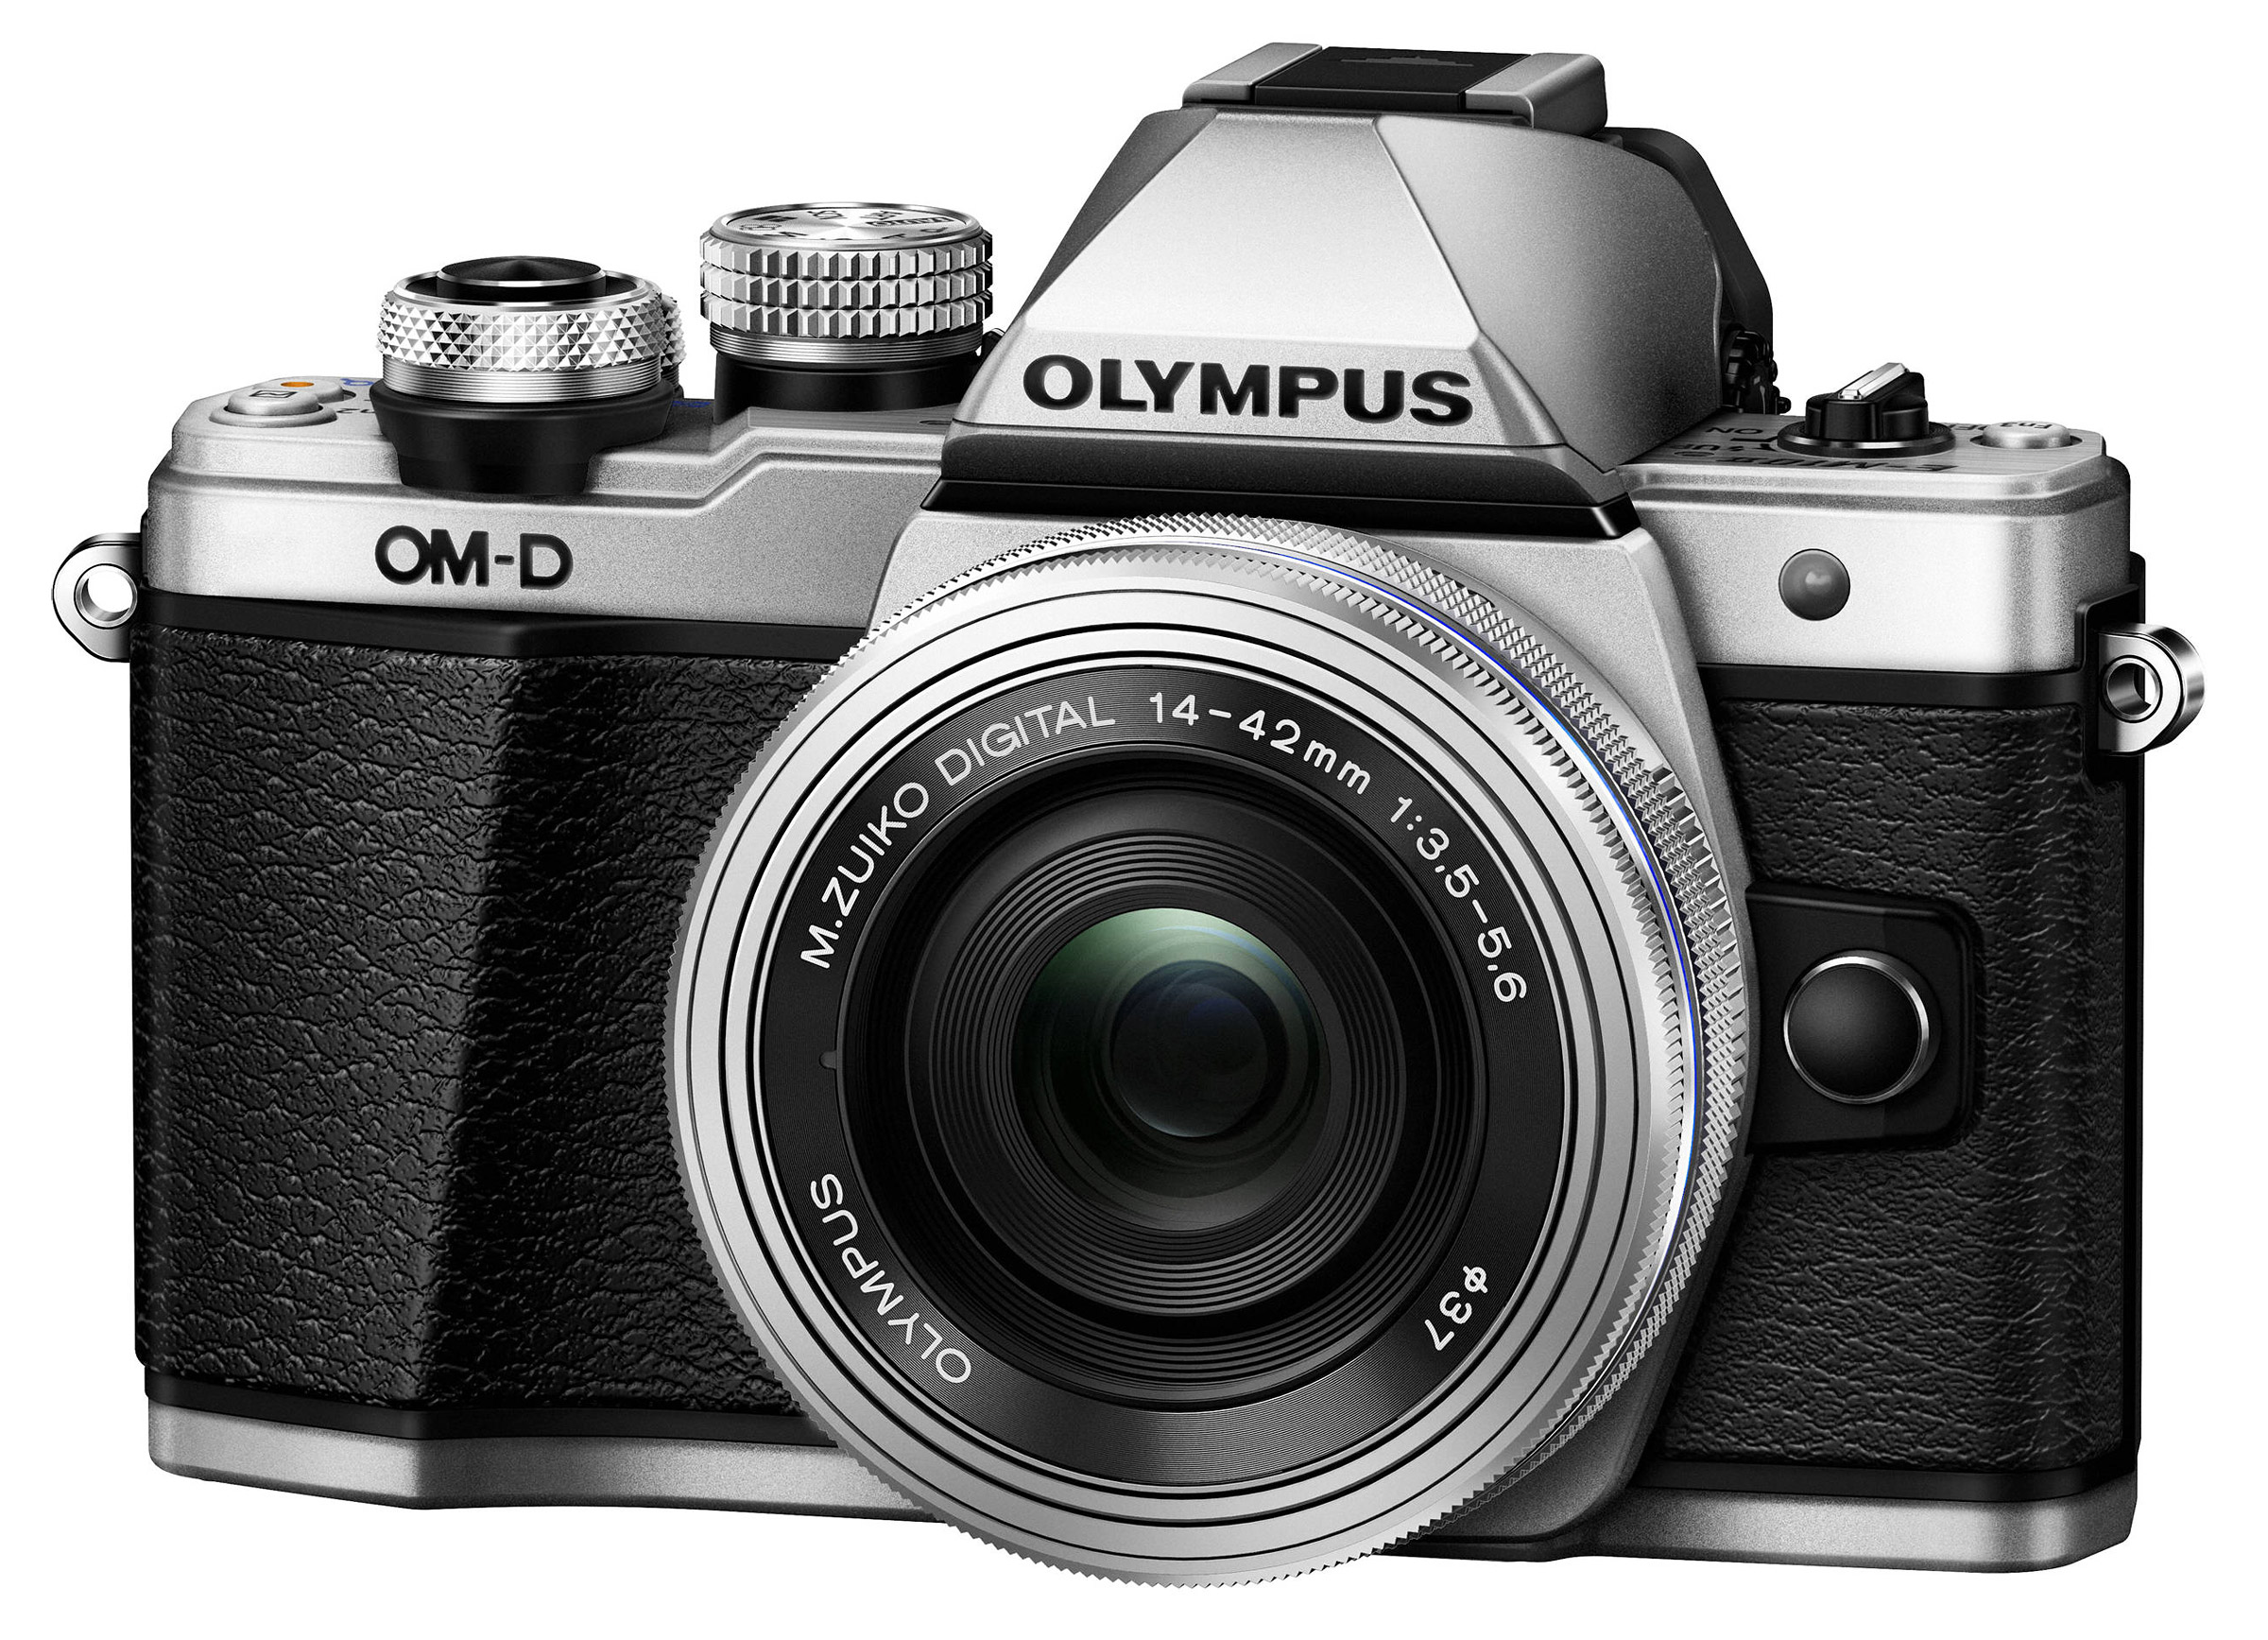 Olympus Om D E M10 Ii Specifications And Opinions Juzaphoto Fujifilm X T10 Kit 16 50mm F 35 56 Ois Black The Is A Mirrorless Camera With 4 3 20x Sensor 161 Megapixels Manufactured From 2015 To 2017 Discontinued